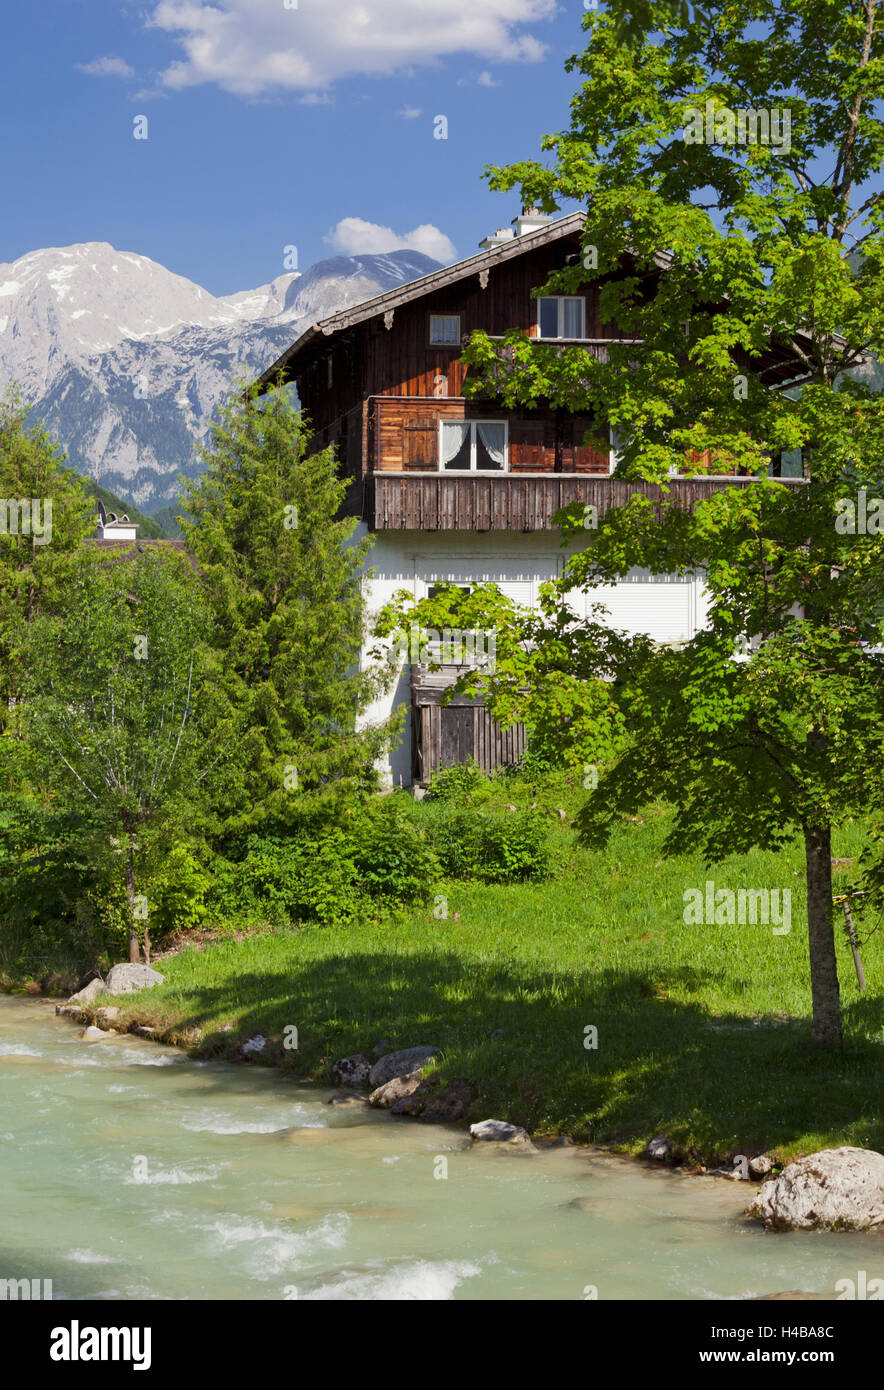 Farmhouse in Ramsau, high Göll, Ramsauer Ache, Berchtesgadener Land district, Bavaria, Germany Stock Photo